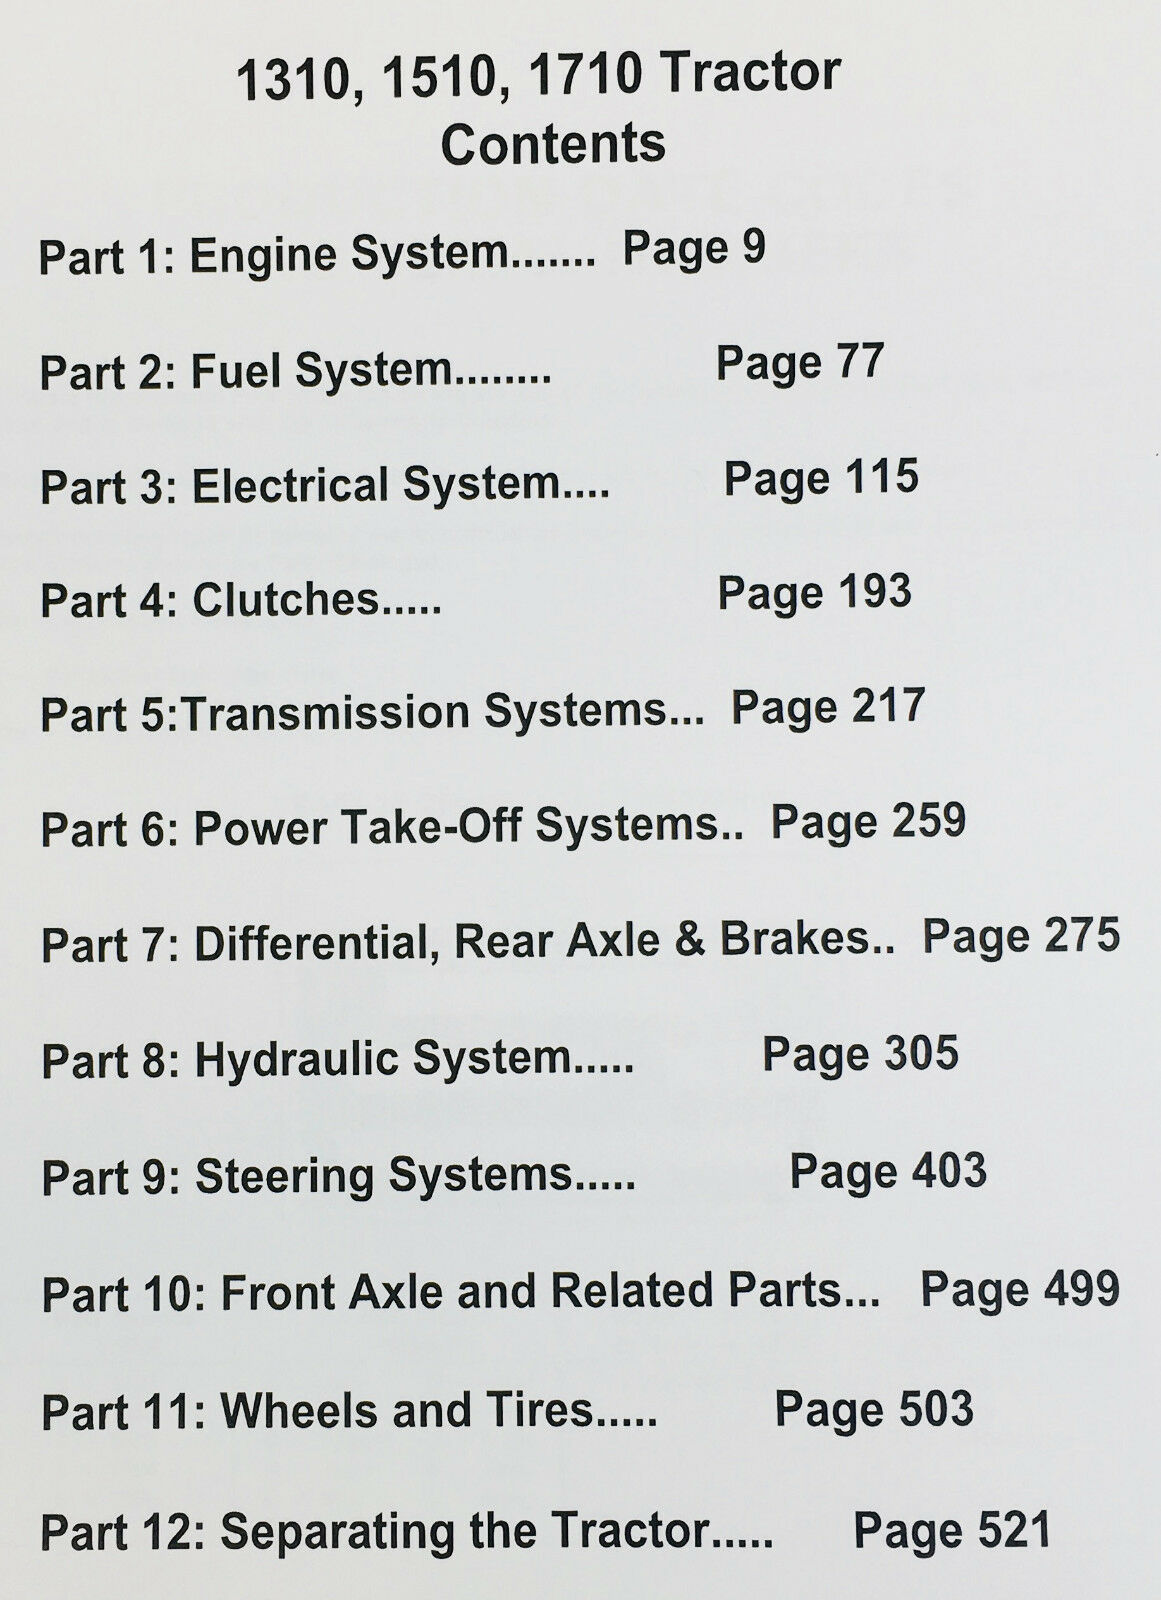 Ford 1310 1510 1710 Compact Offset Tractor Service Repair Shop Wiring Harness Picture Manual Book Ebay